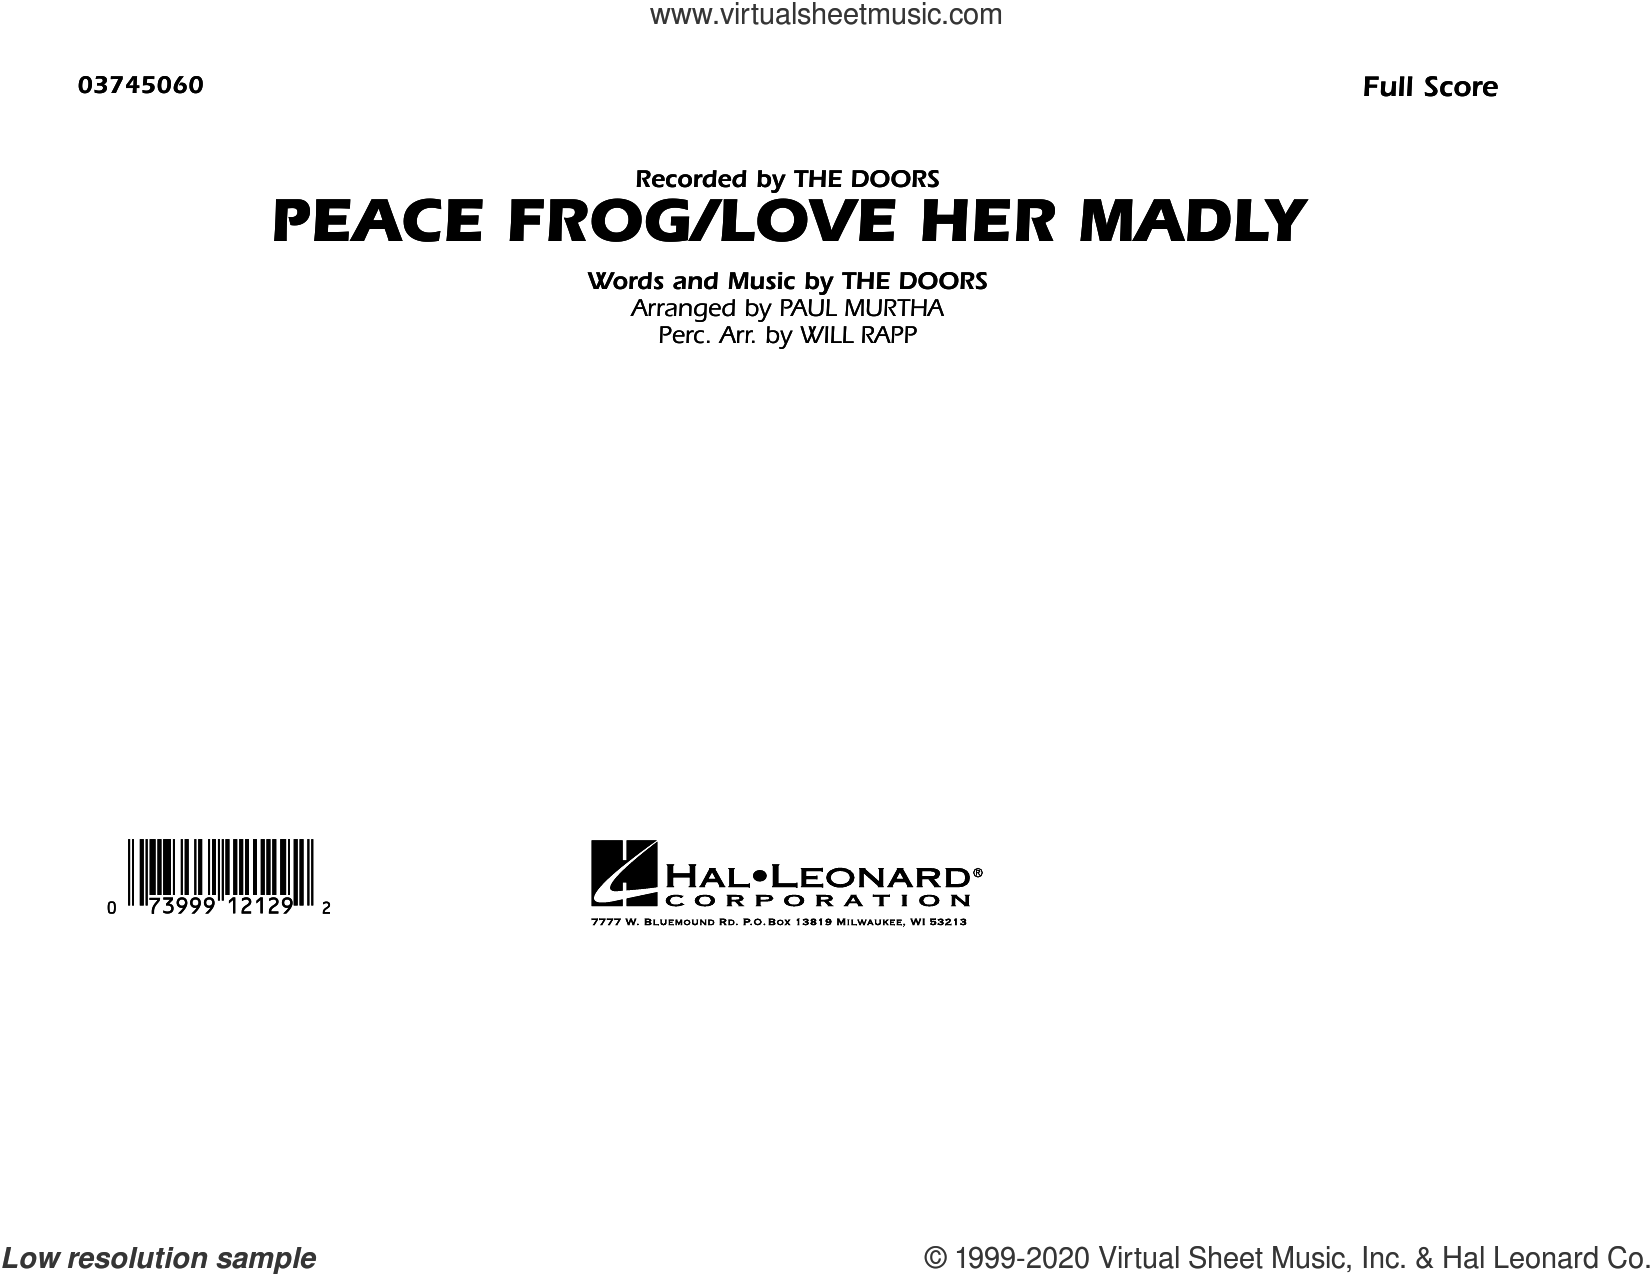 Peace Frog/Love Her Madly (arr. Paul Murtha) (COMPLETE) sheet music for marching band by Paul Murtha and The Doors, intermediate skill level